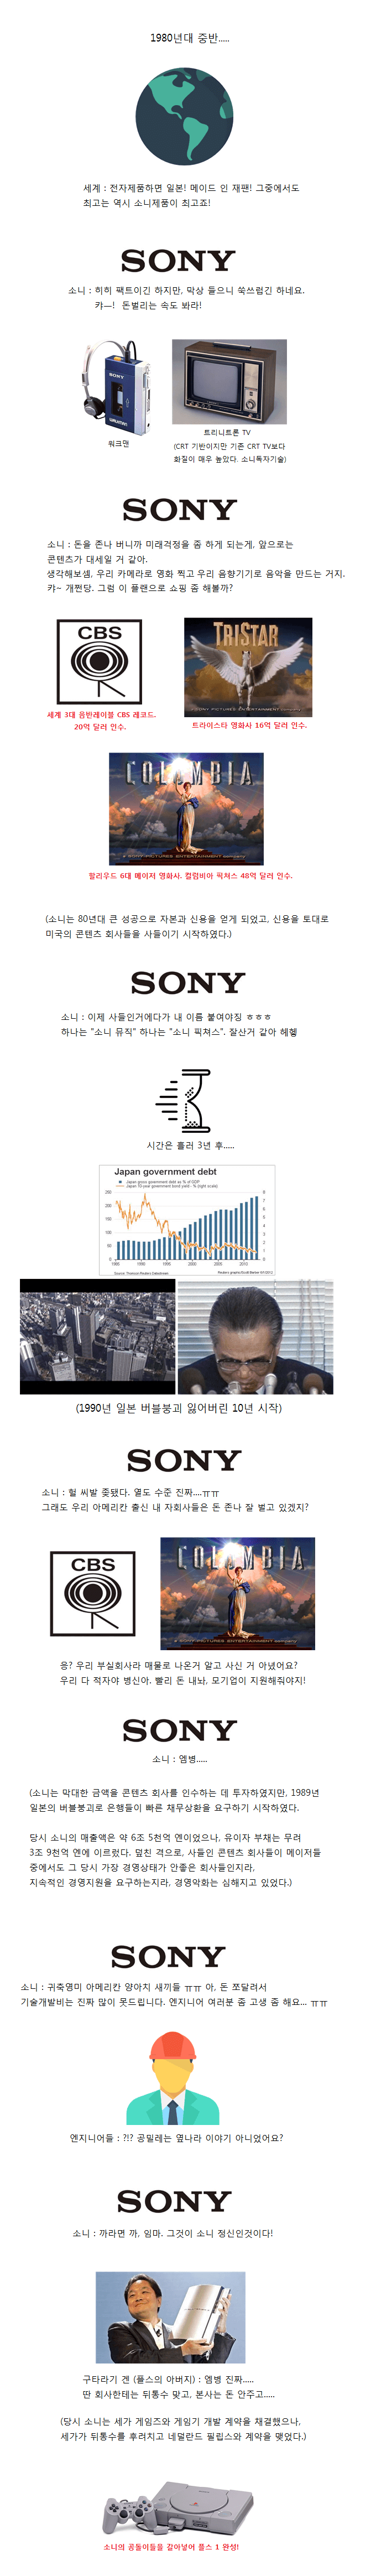 sony01.png